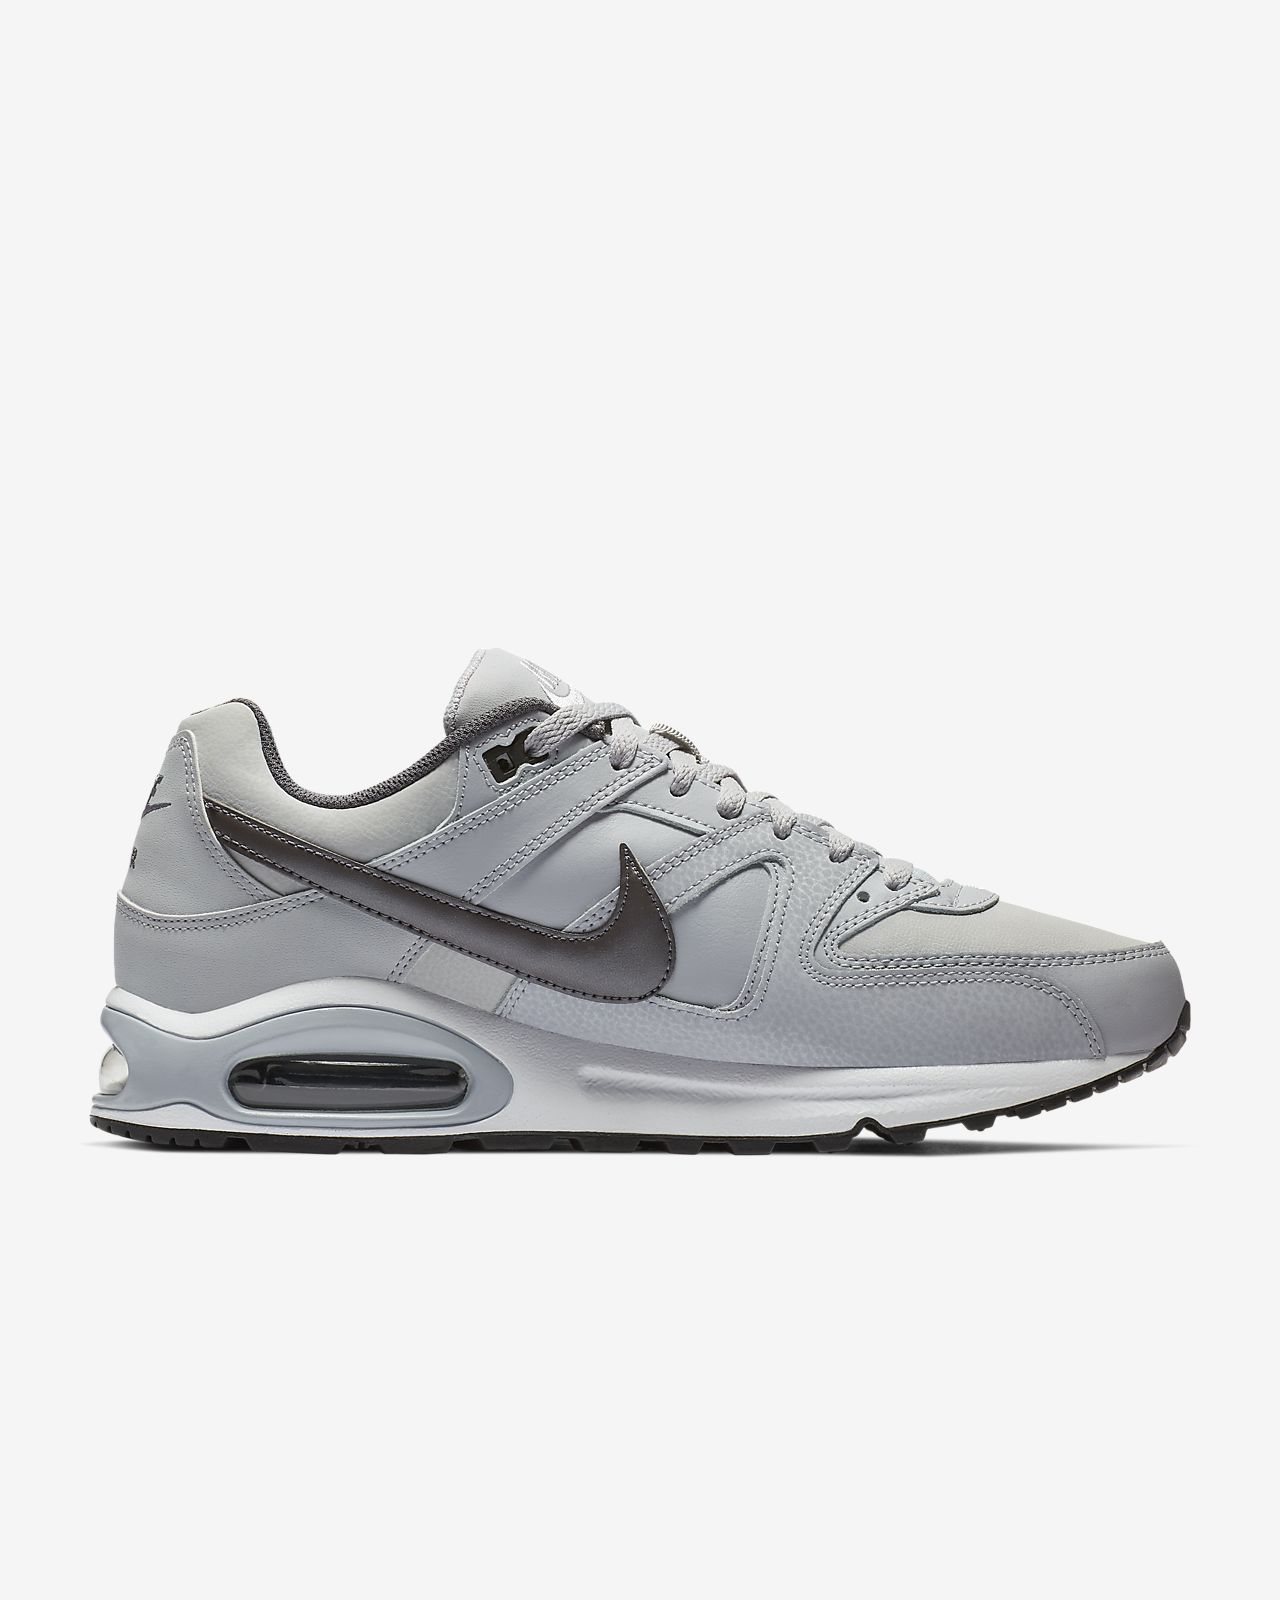 Details about Nike Air Max Command Leather black or gray men's sneakers casual shoes NEW